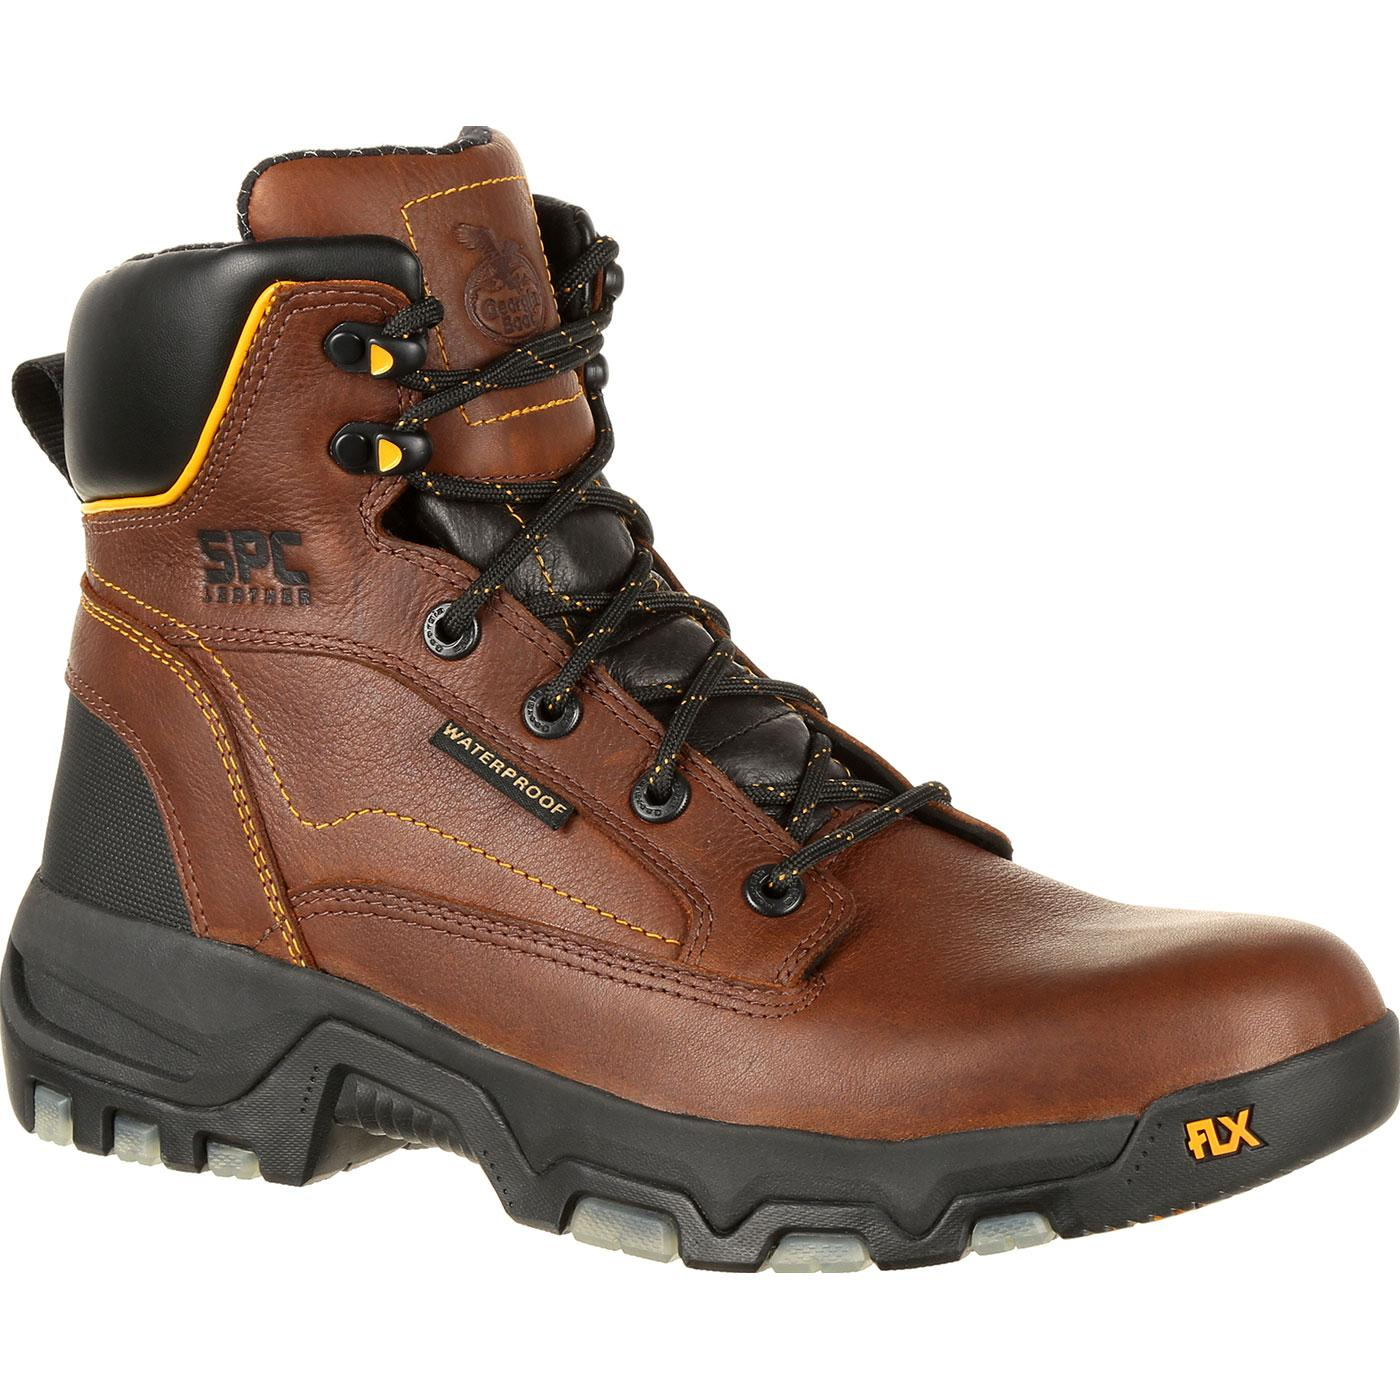 comforter all purpose shoes the for most hiking work men comfortable boots best